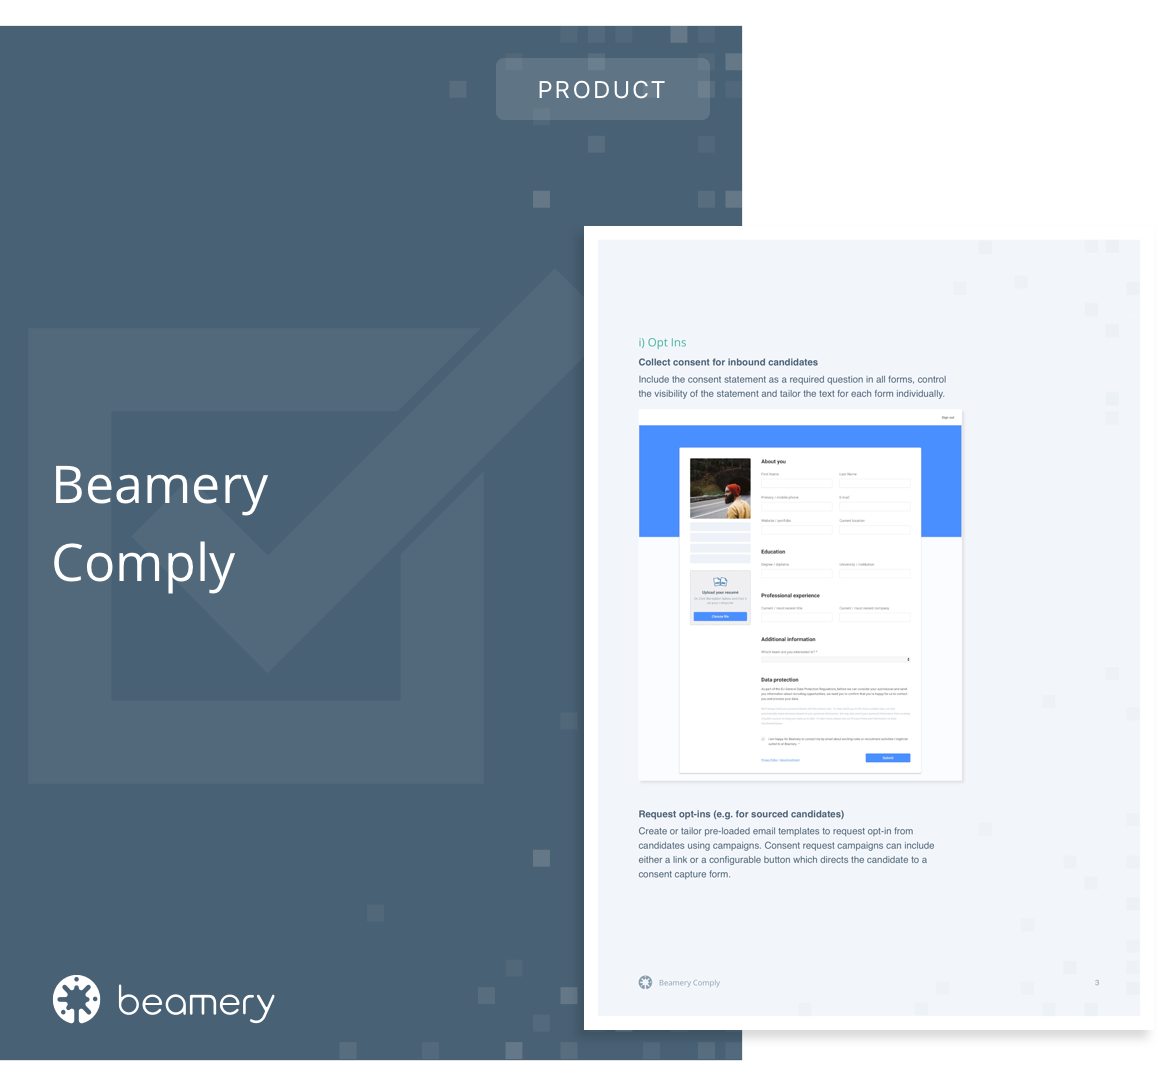 Beamery Comply Overview